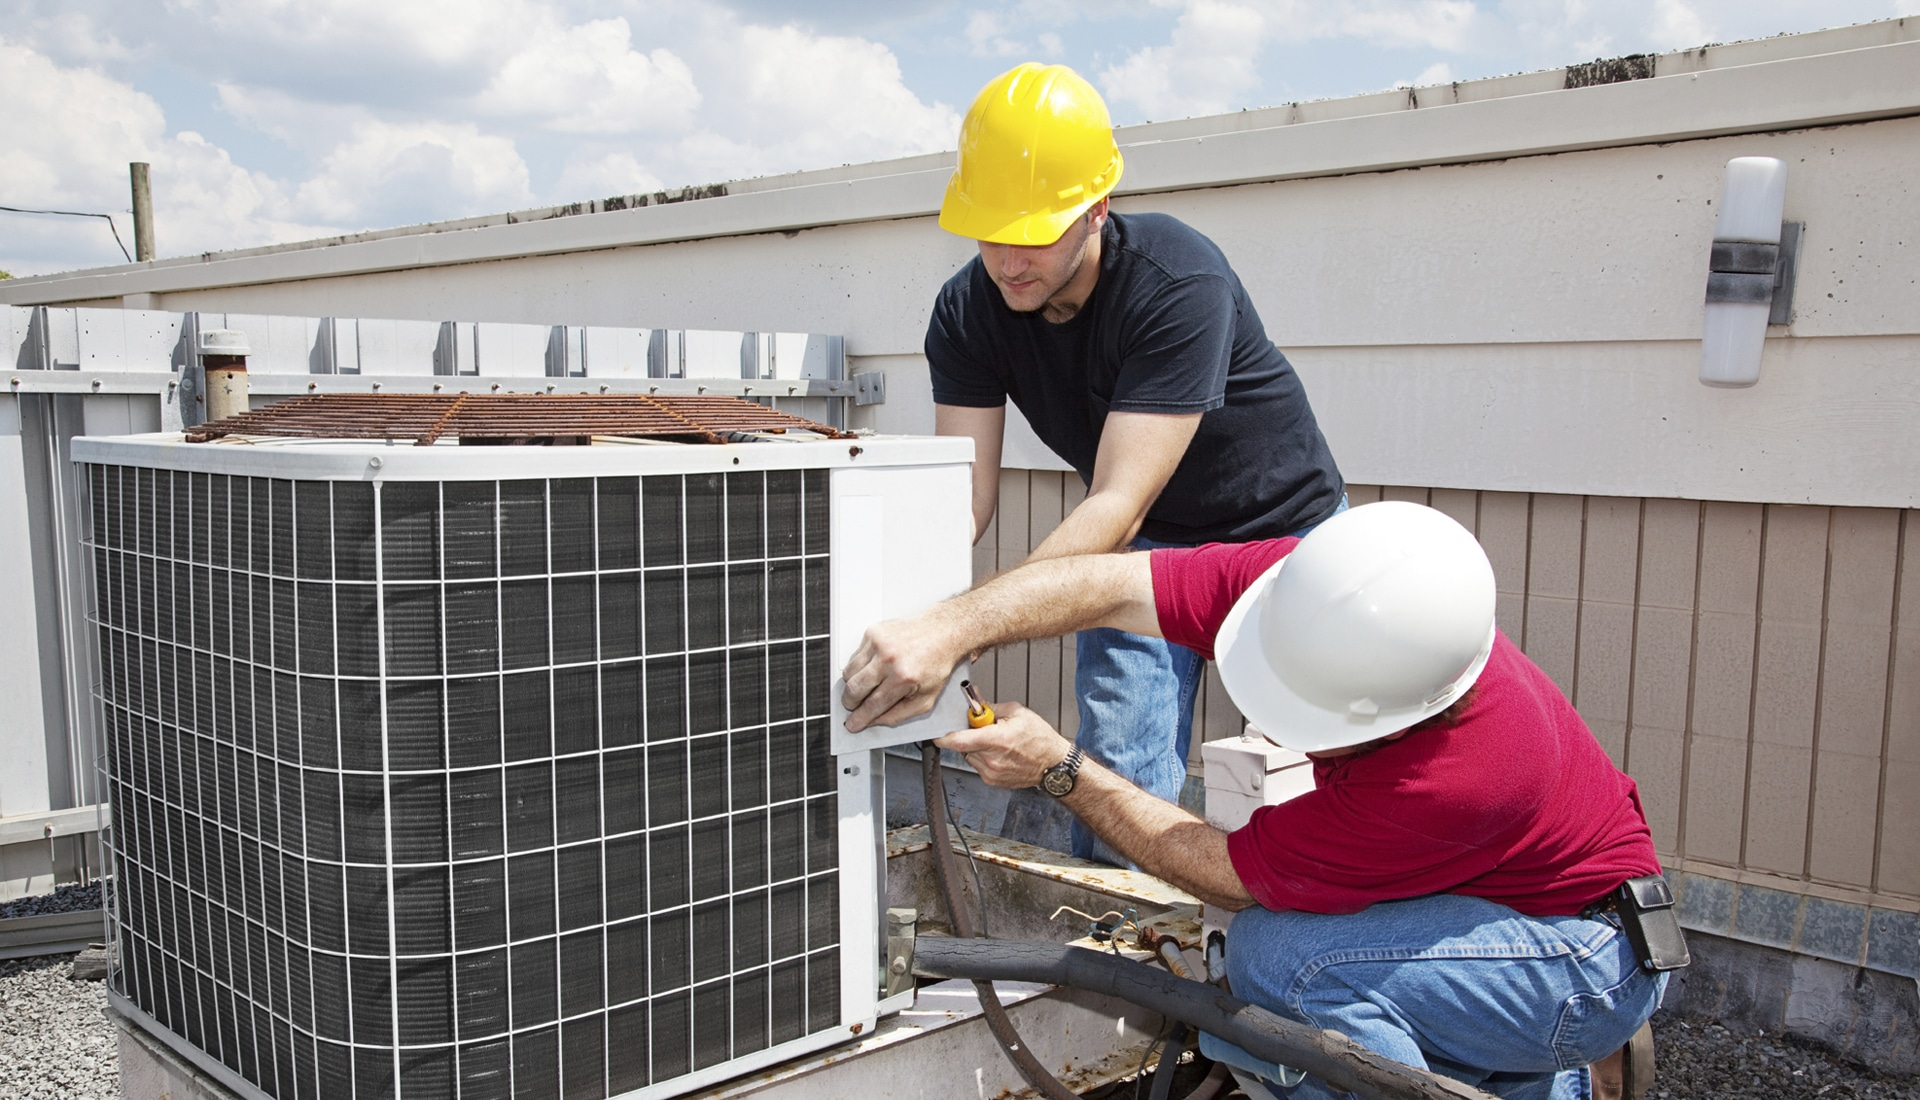 Workers Installing an Air Conditioner on a Roof